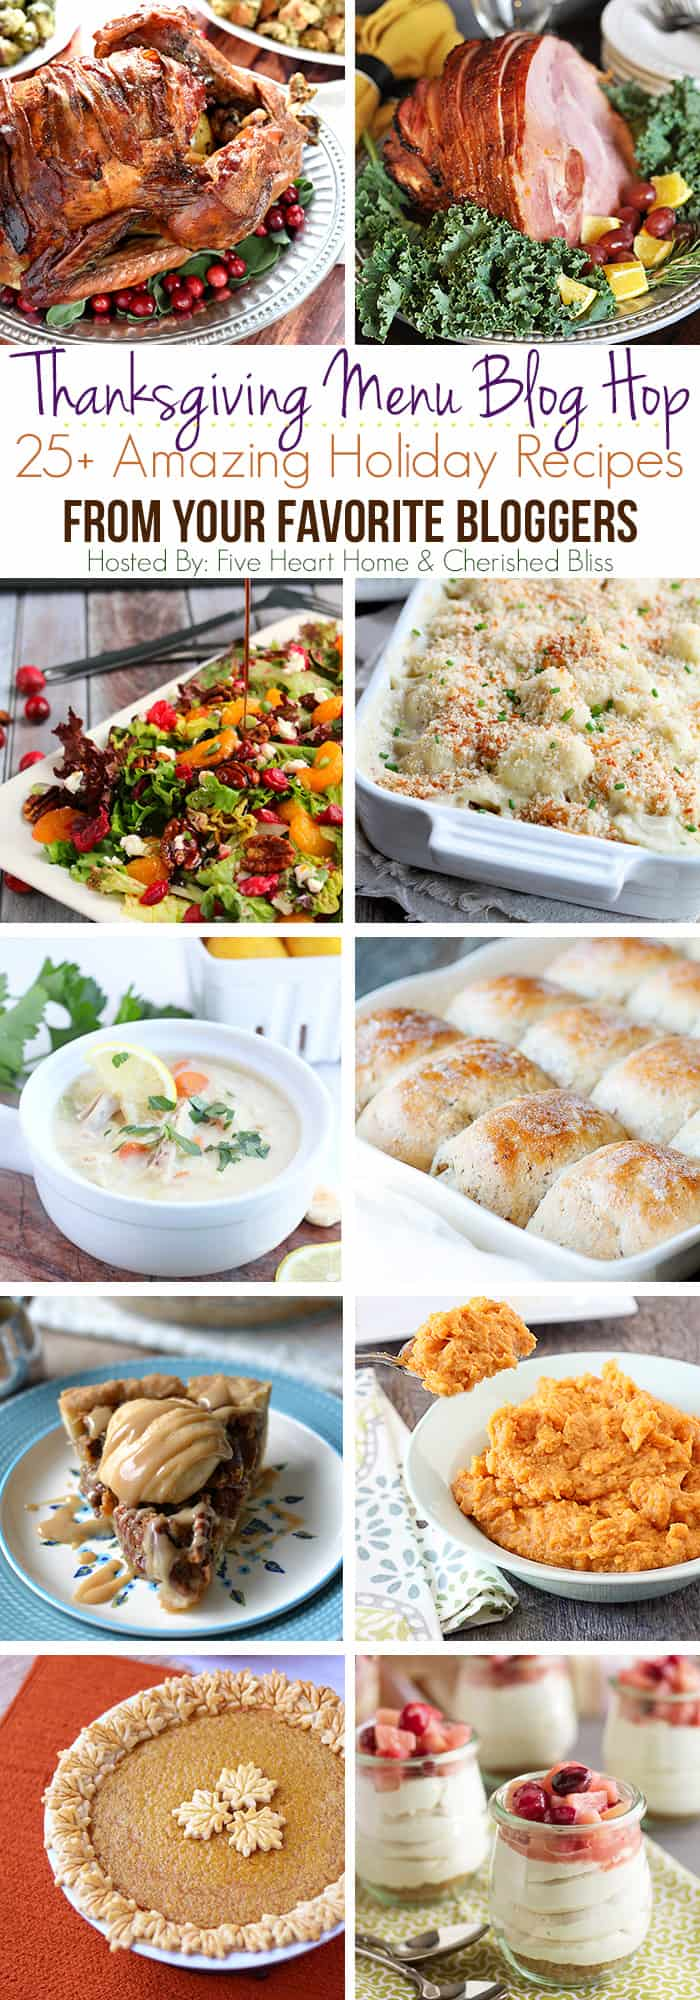 Thanksgiving Recipes Blog Hop ~ 25+ Holiday Main Dishes, Side Dishes, and Desserts from Your Favorite Bloggers! | FiveHeartHome.com